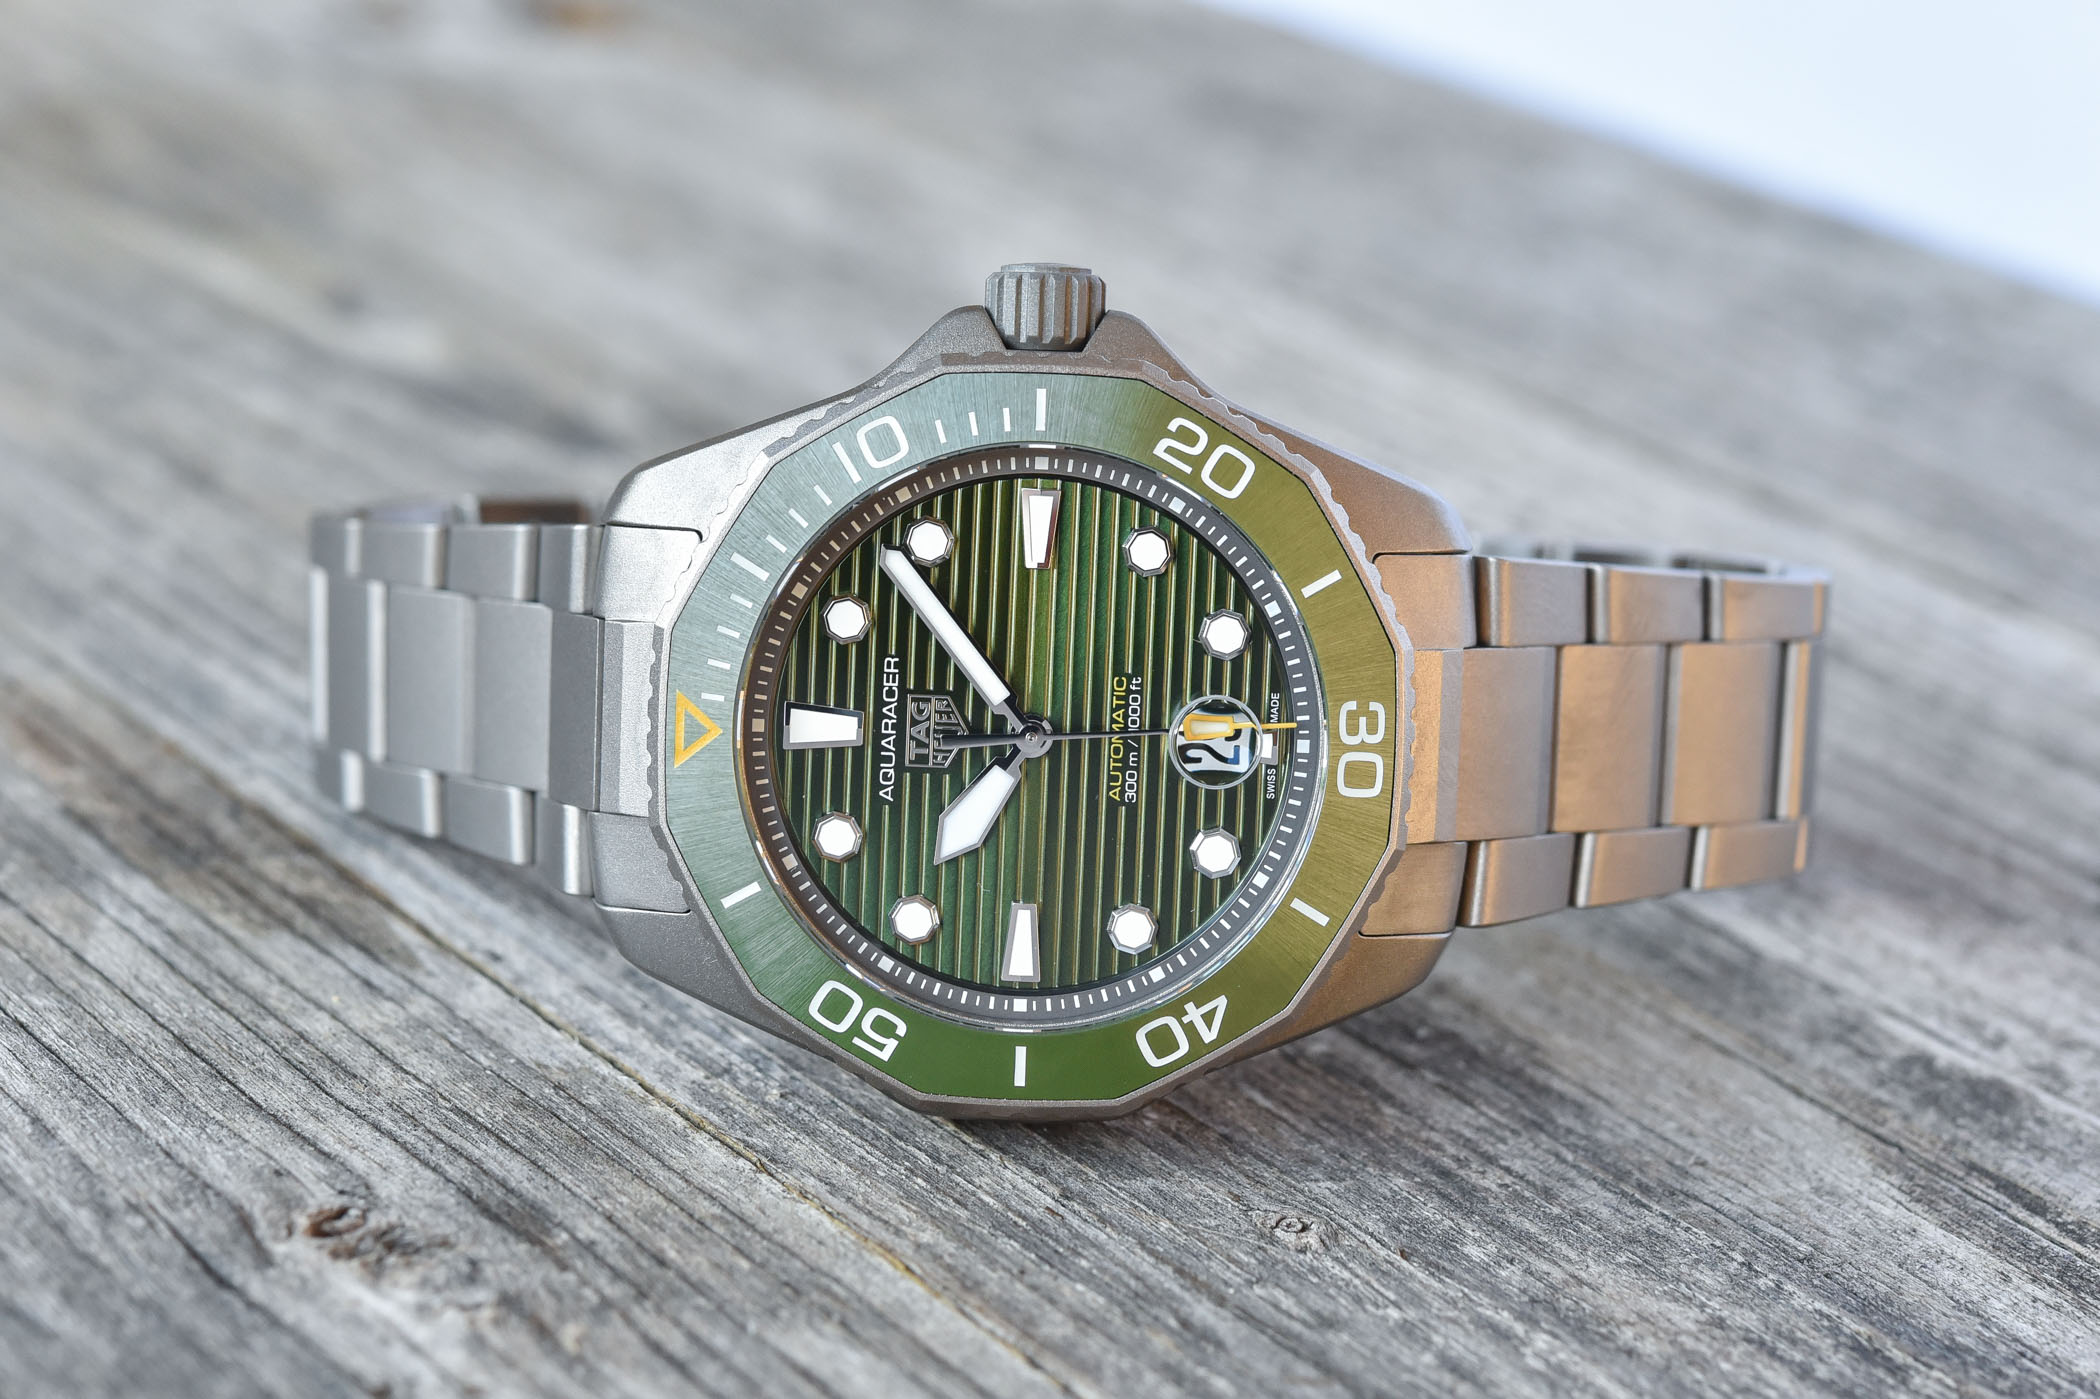 2021 TAG Heuer Aquaracer Professional 300 Calirbe 5 Automatic Collection